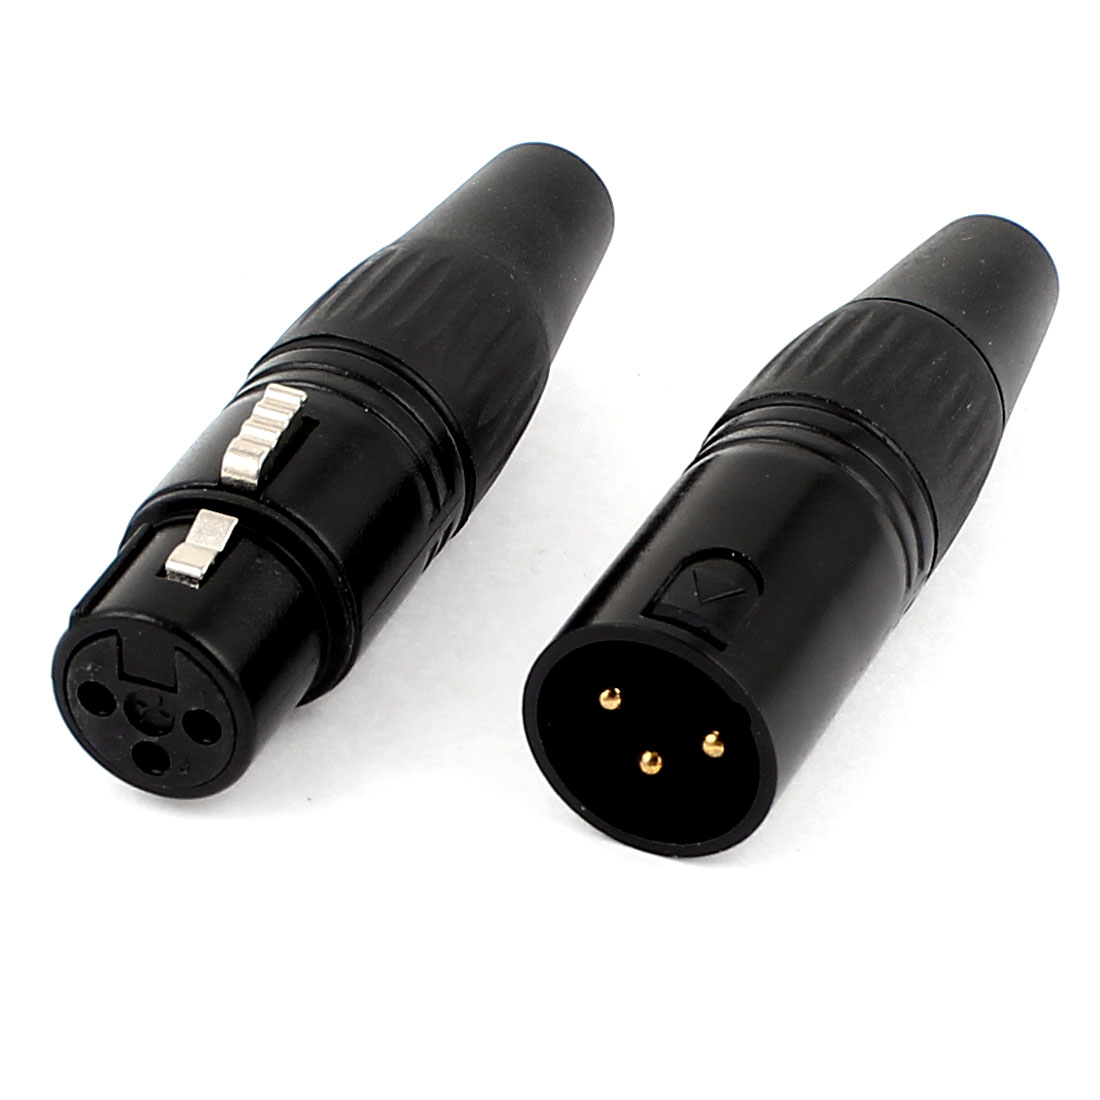 2 Pcs Audio Mic Microphone Adapter XLR 3 Pin Male Female Jack Connector